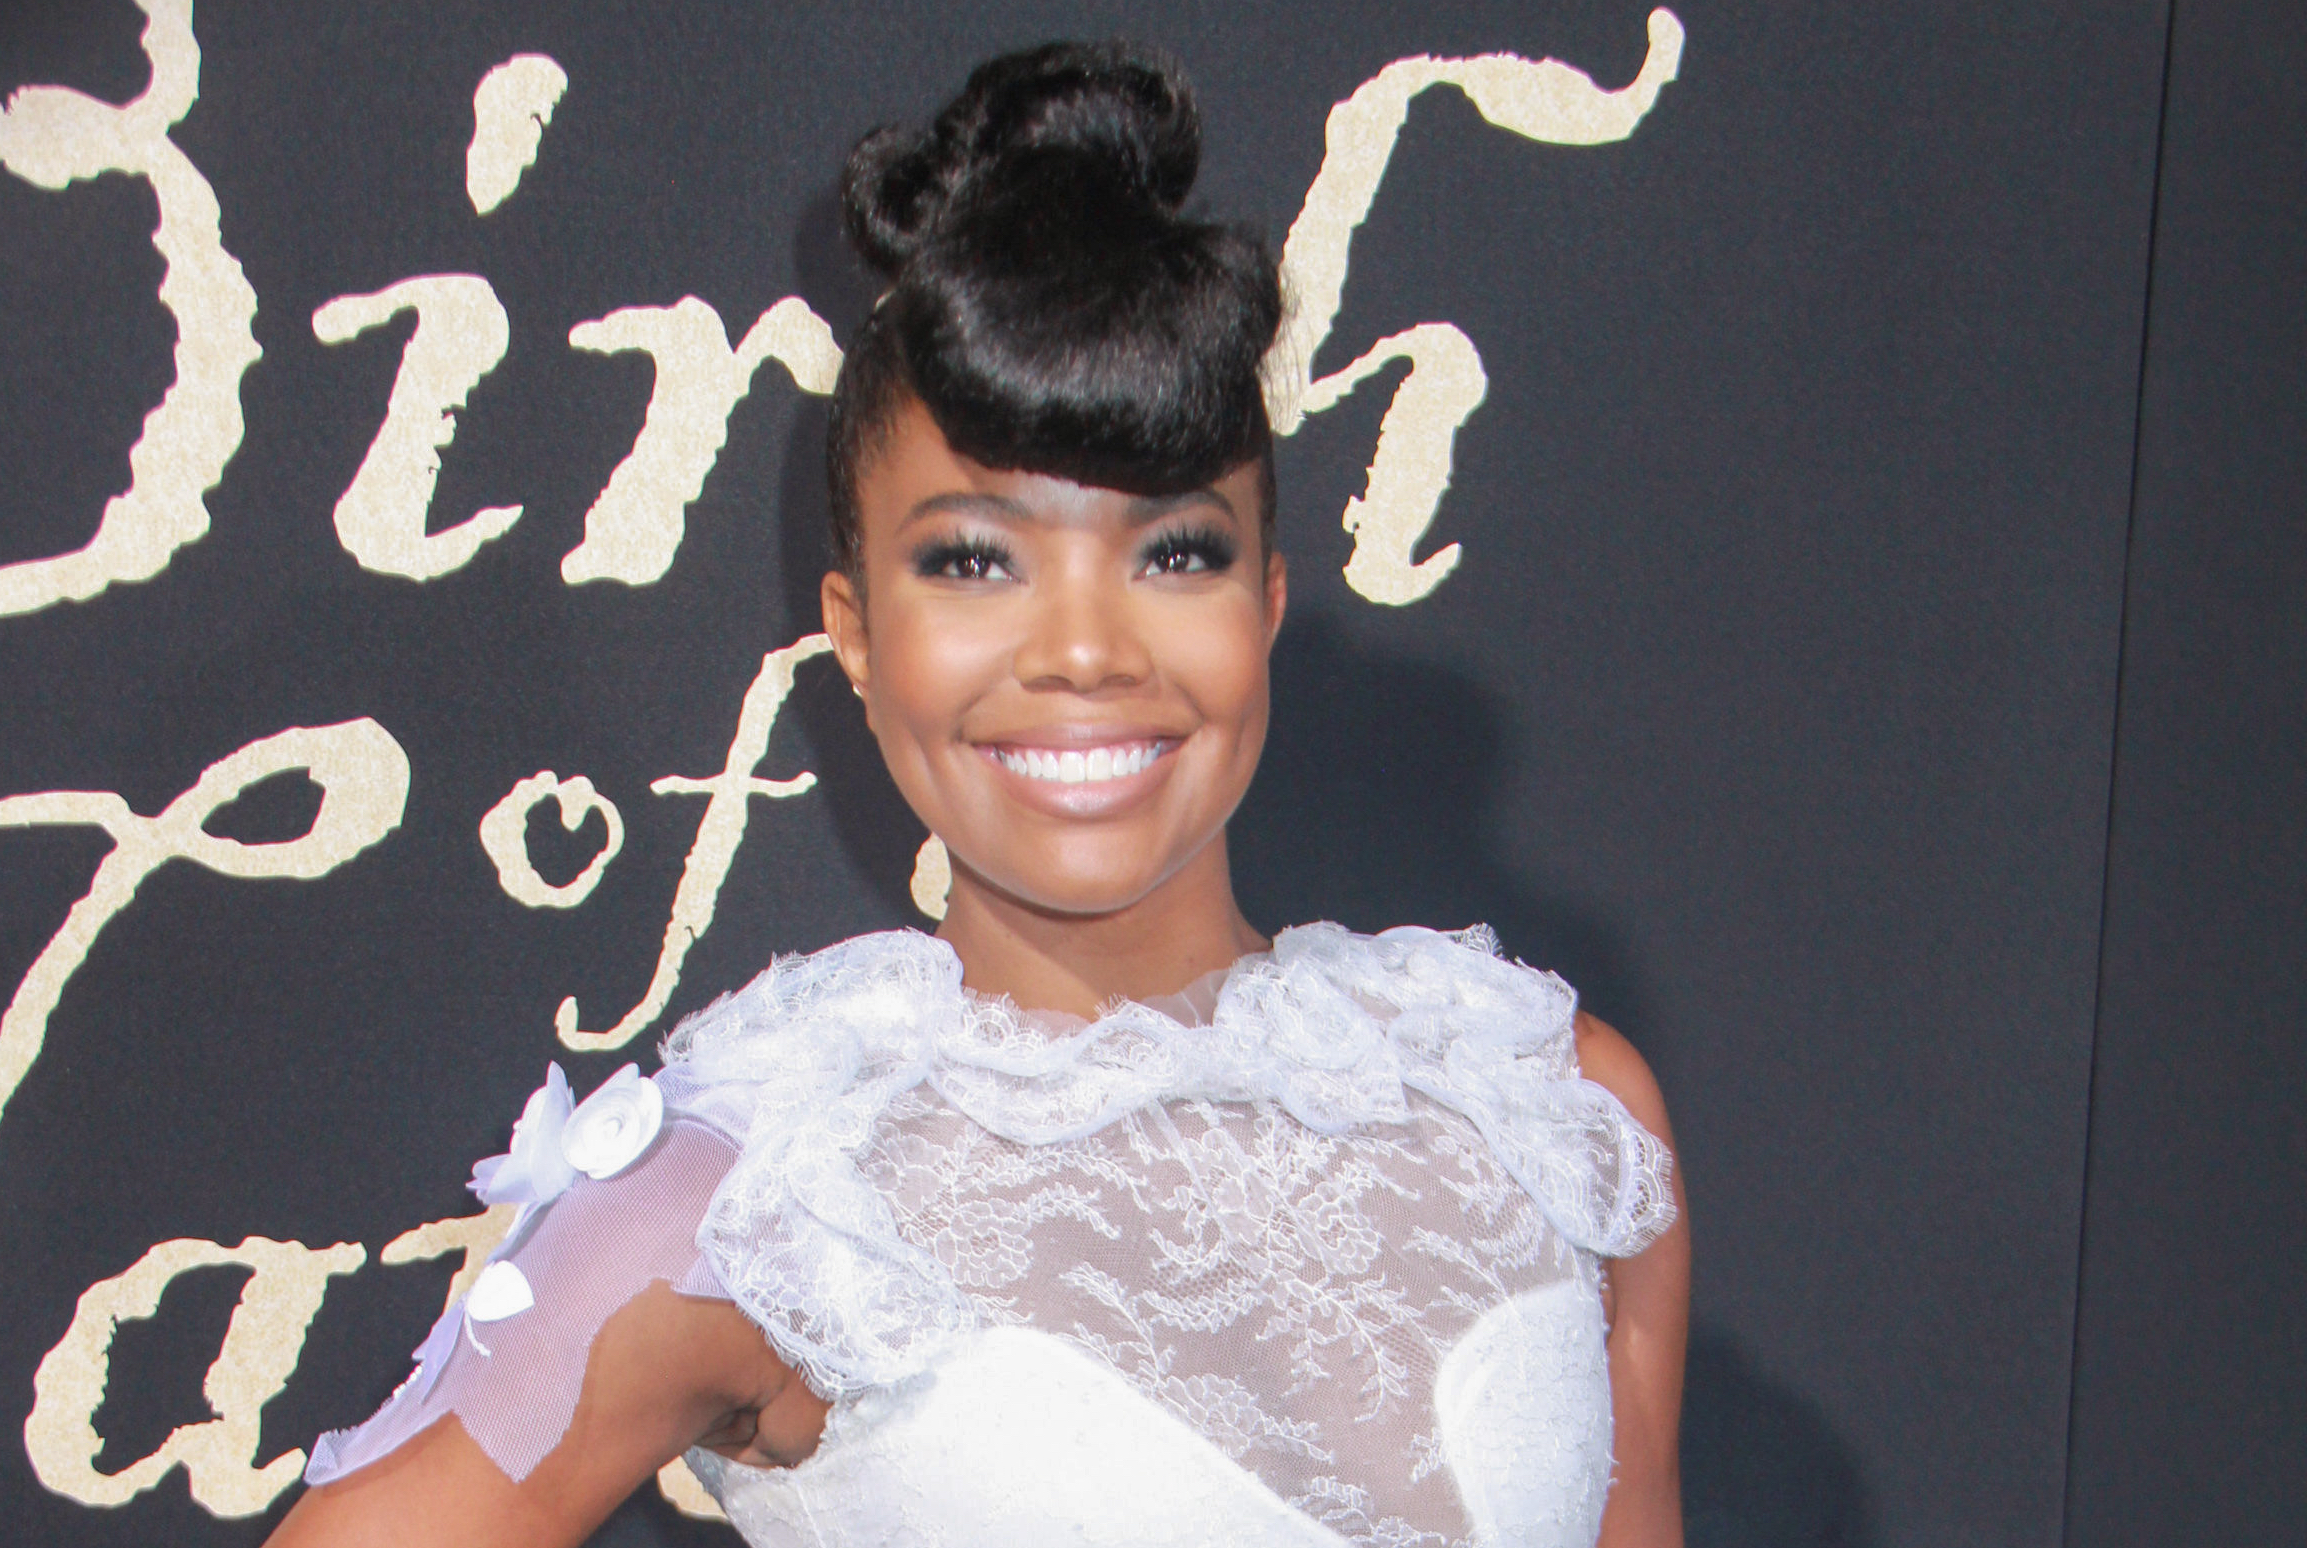 "09/21/2016 - Gabrielle Union - ""The Birth of a Nation"" Los Angeles Premiere - Inside Arrivals - ArcLight Cinemas Cinerama Dome, 6360 Sunset Boulevard - Los Angeles, CA, USA - Keywords: Vertical, Fox Searchlight Pictures, Biography, Drama, Film Premiere, Movie Premiere, Person, People, Celebrity, Celebrities, Portrait, Photography, Red Carpet Event, Arts Culture and Entertainment, Attending, Hollywood, California Orientation: Portrait Face Count: 1 - False - Photo Credit: Izumi Hasegawa / PRPhotos.com - Contact (1-866-551-7827) - Portrait Face Count: 1"